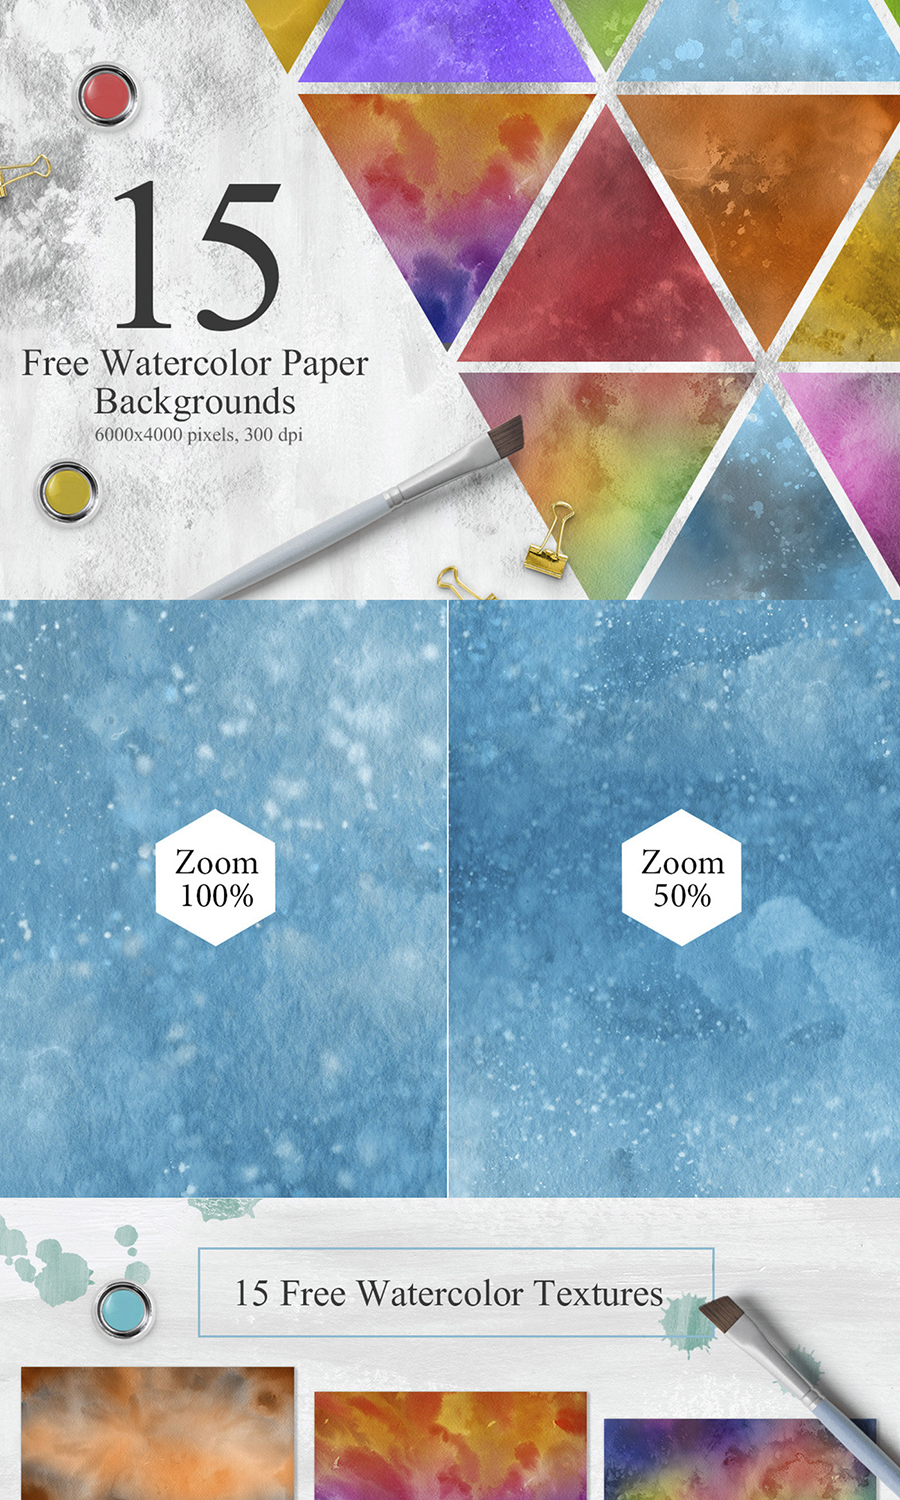 Free Watercolor Paper Background Free Design Resources